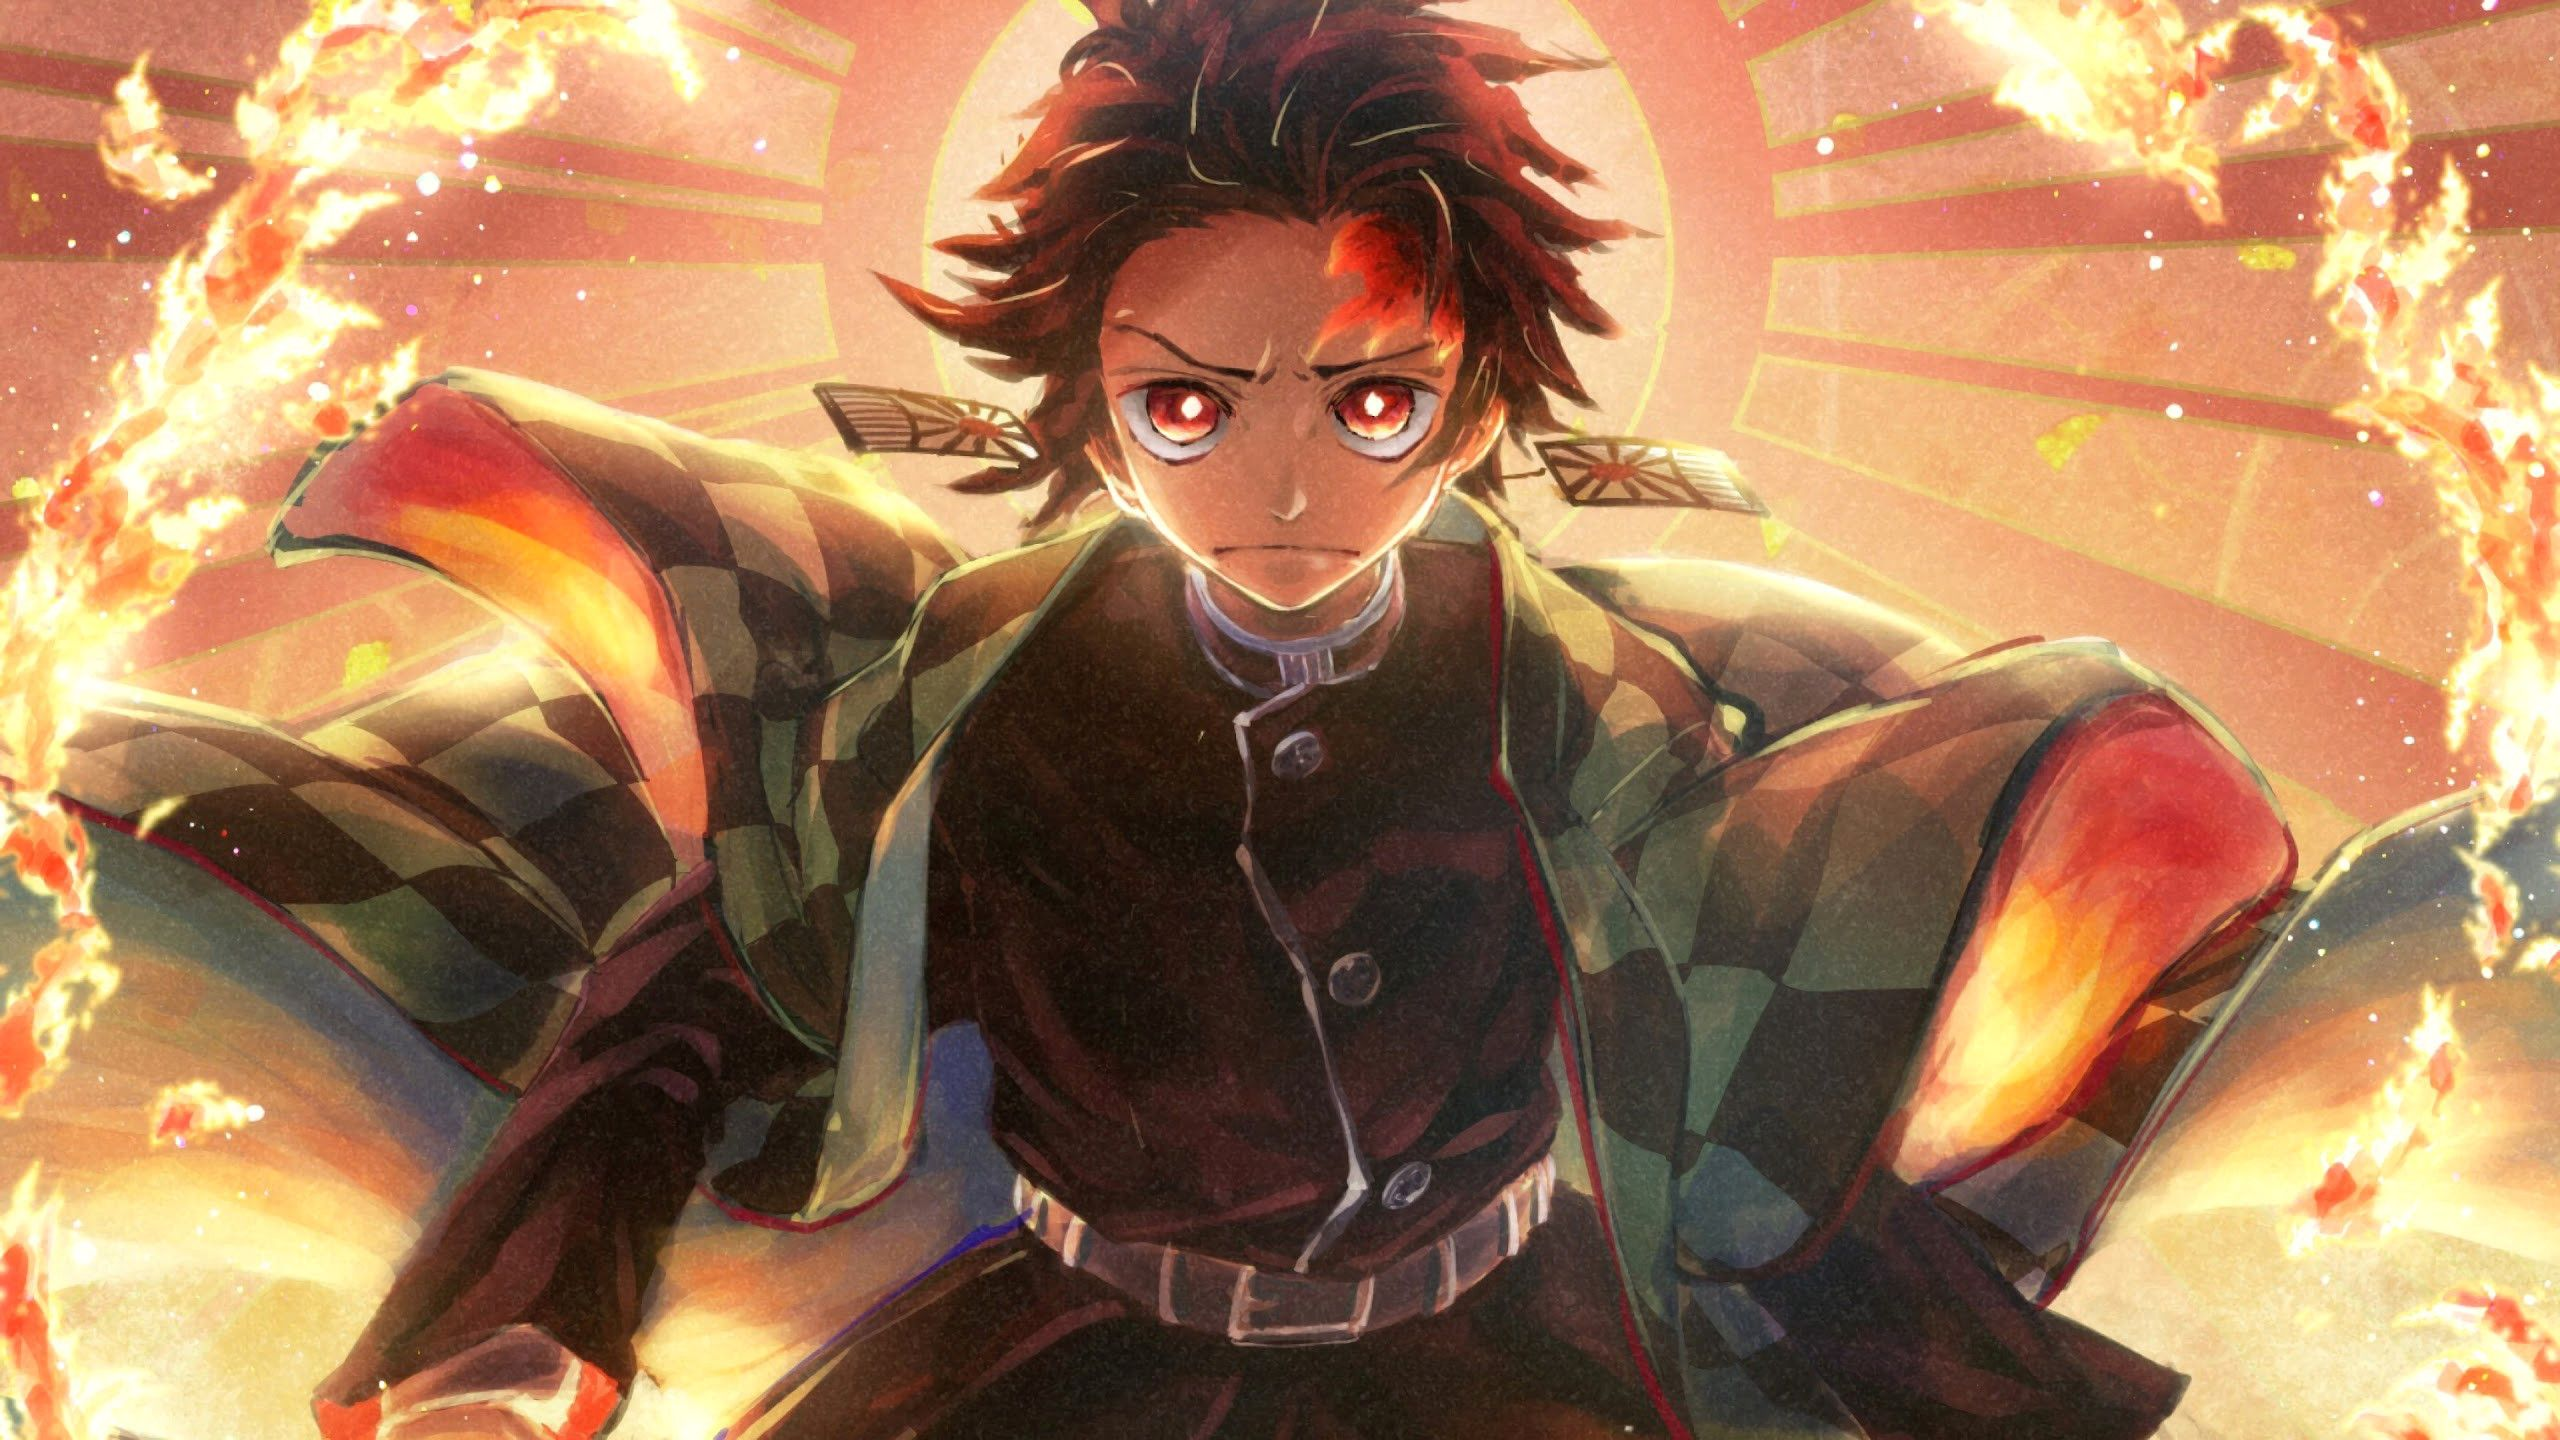 Unique Tanjirou Kamado Kimetsu No Yaiba 4k Wallpaper Anime Wallpaper Android Wallpaper Anime Anime